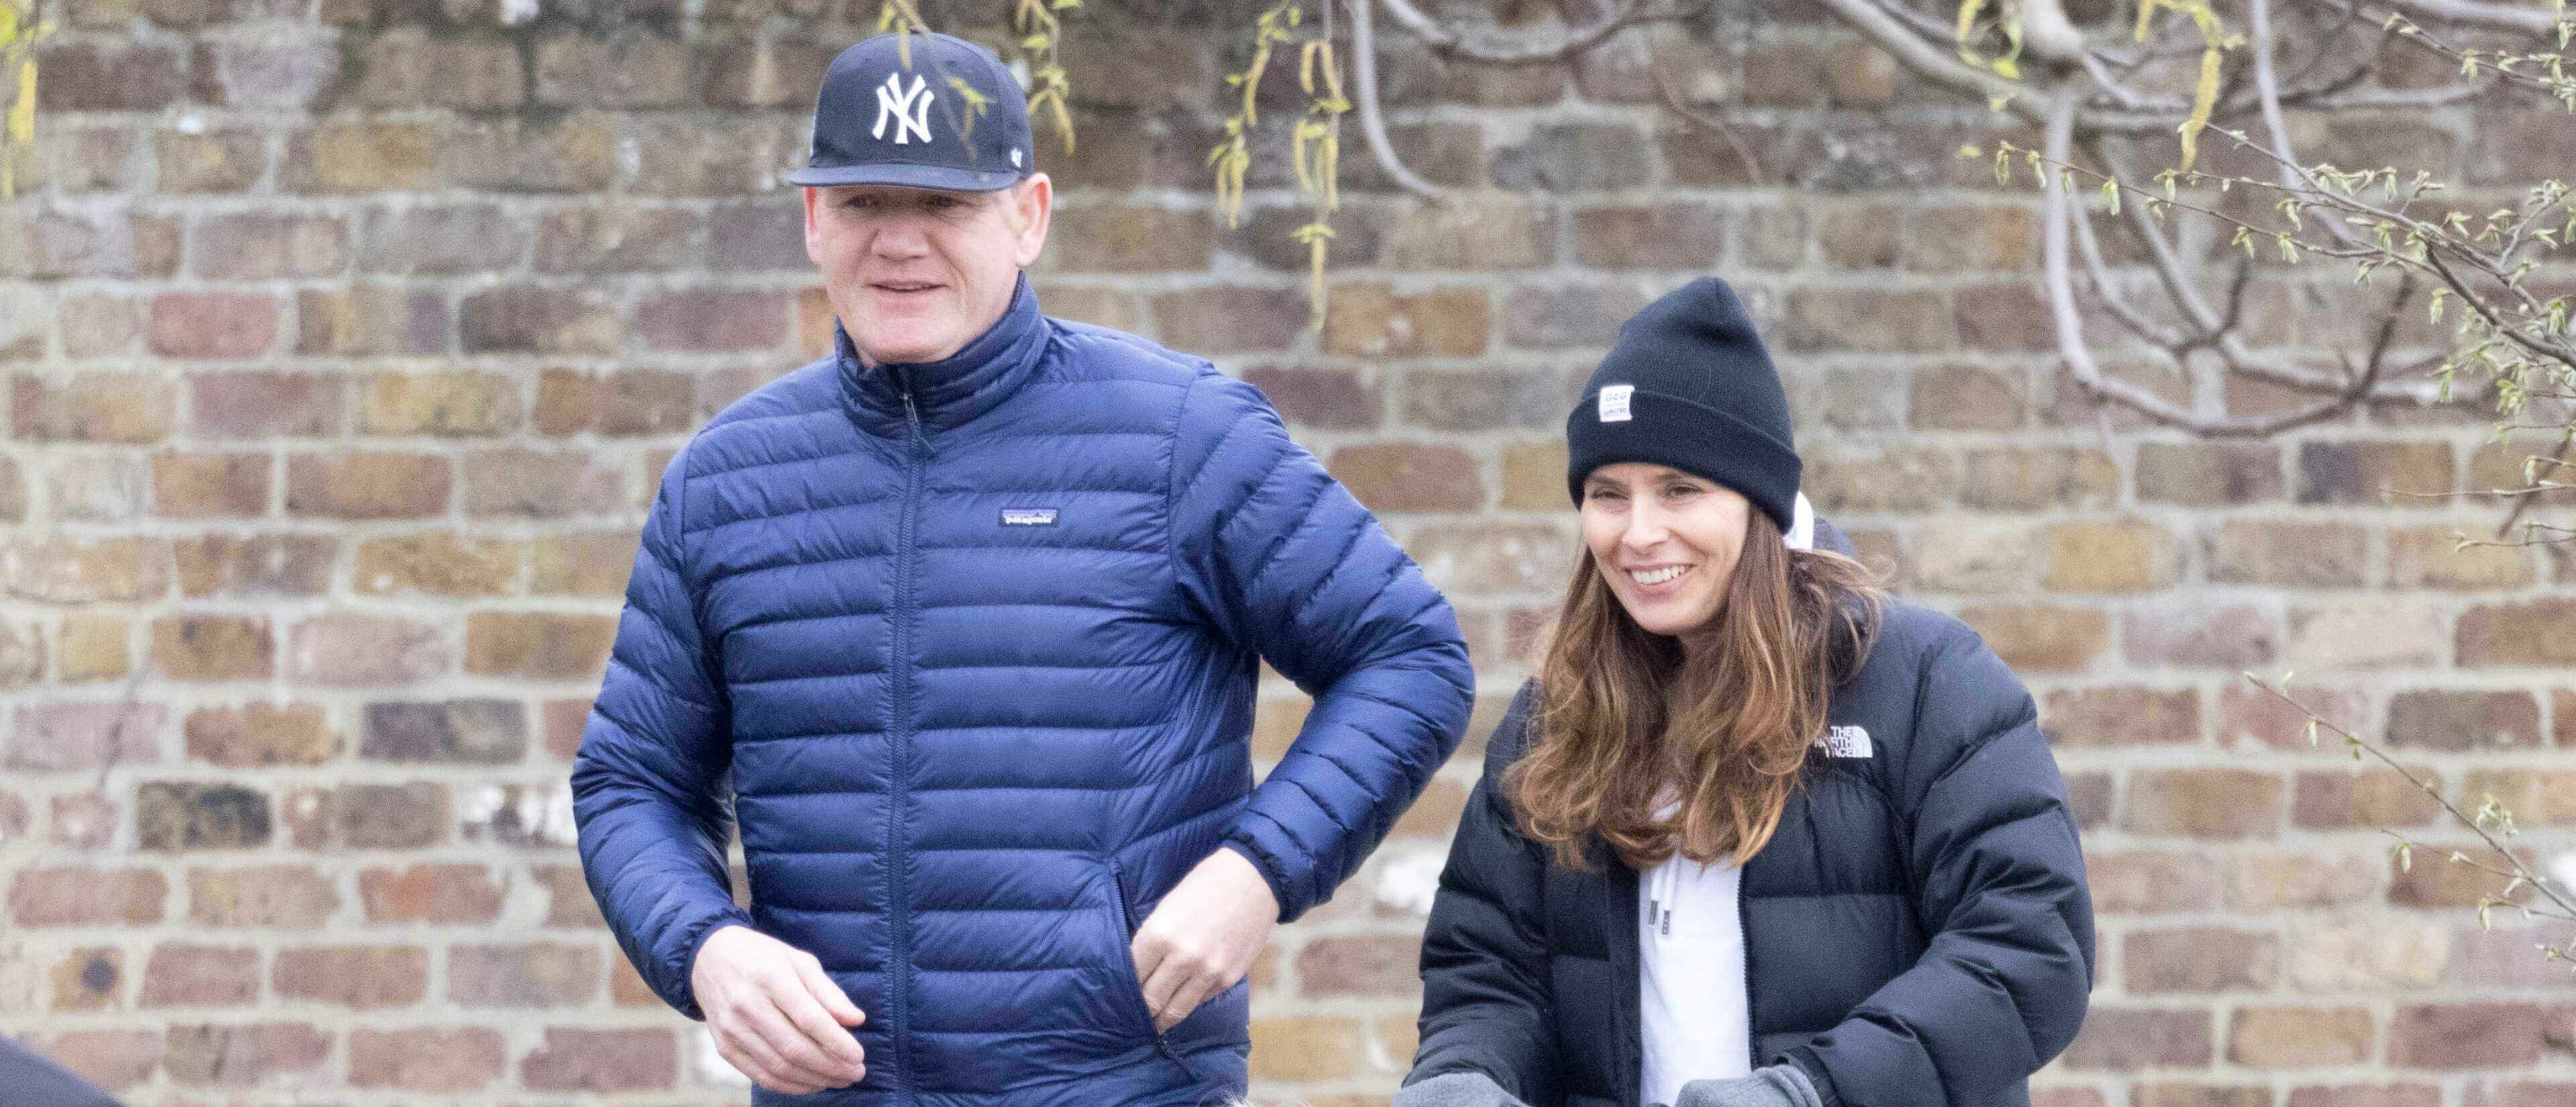 SPOTTED: Chef Gordon Ramsay & Family enjoy day out with the iCandy Peach All-Terrain